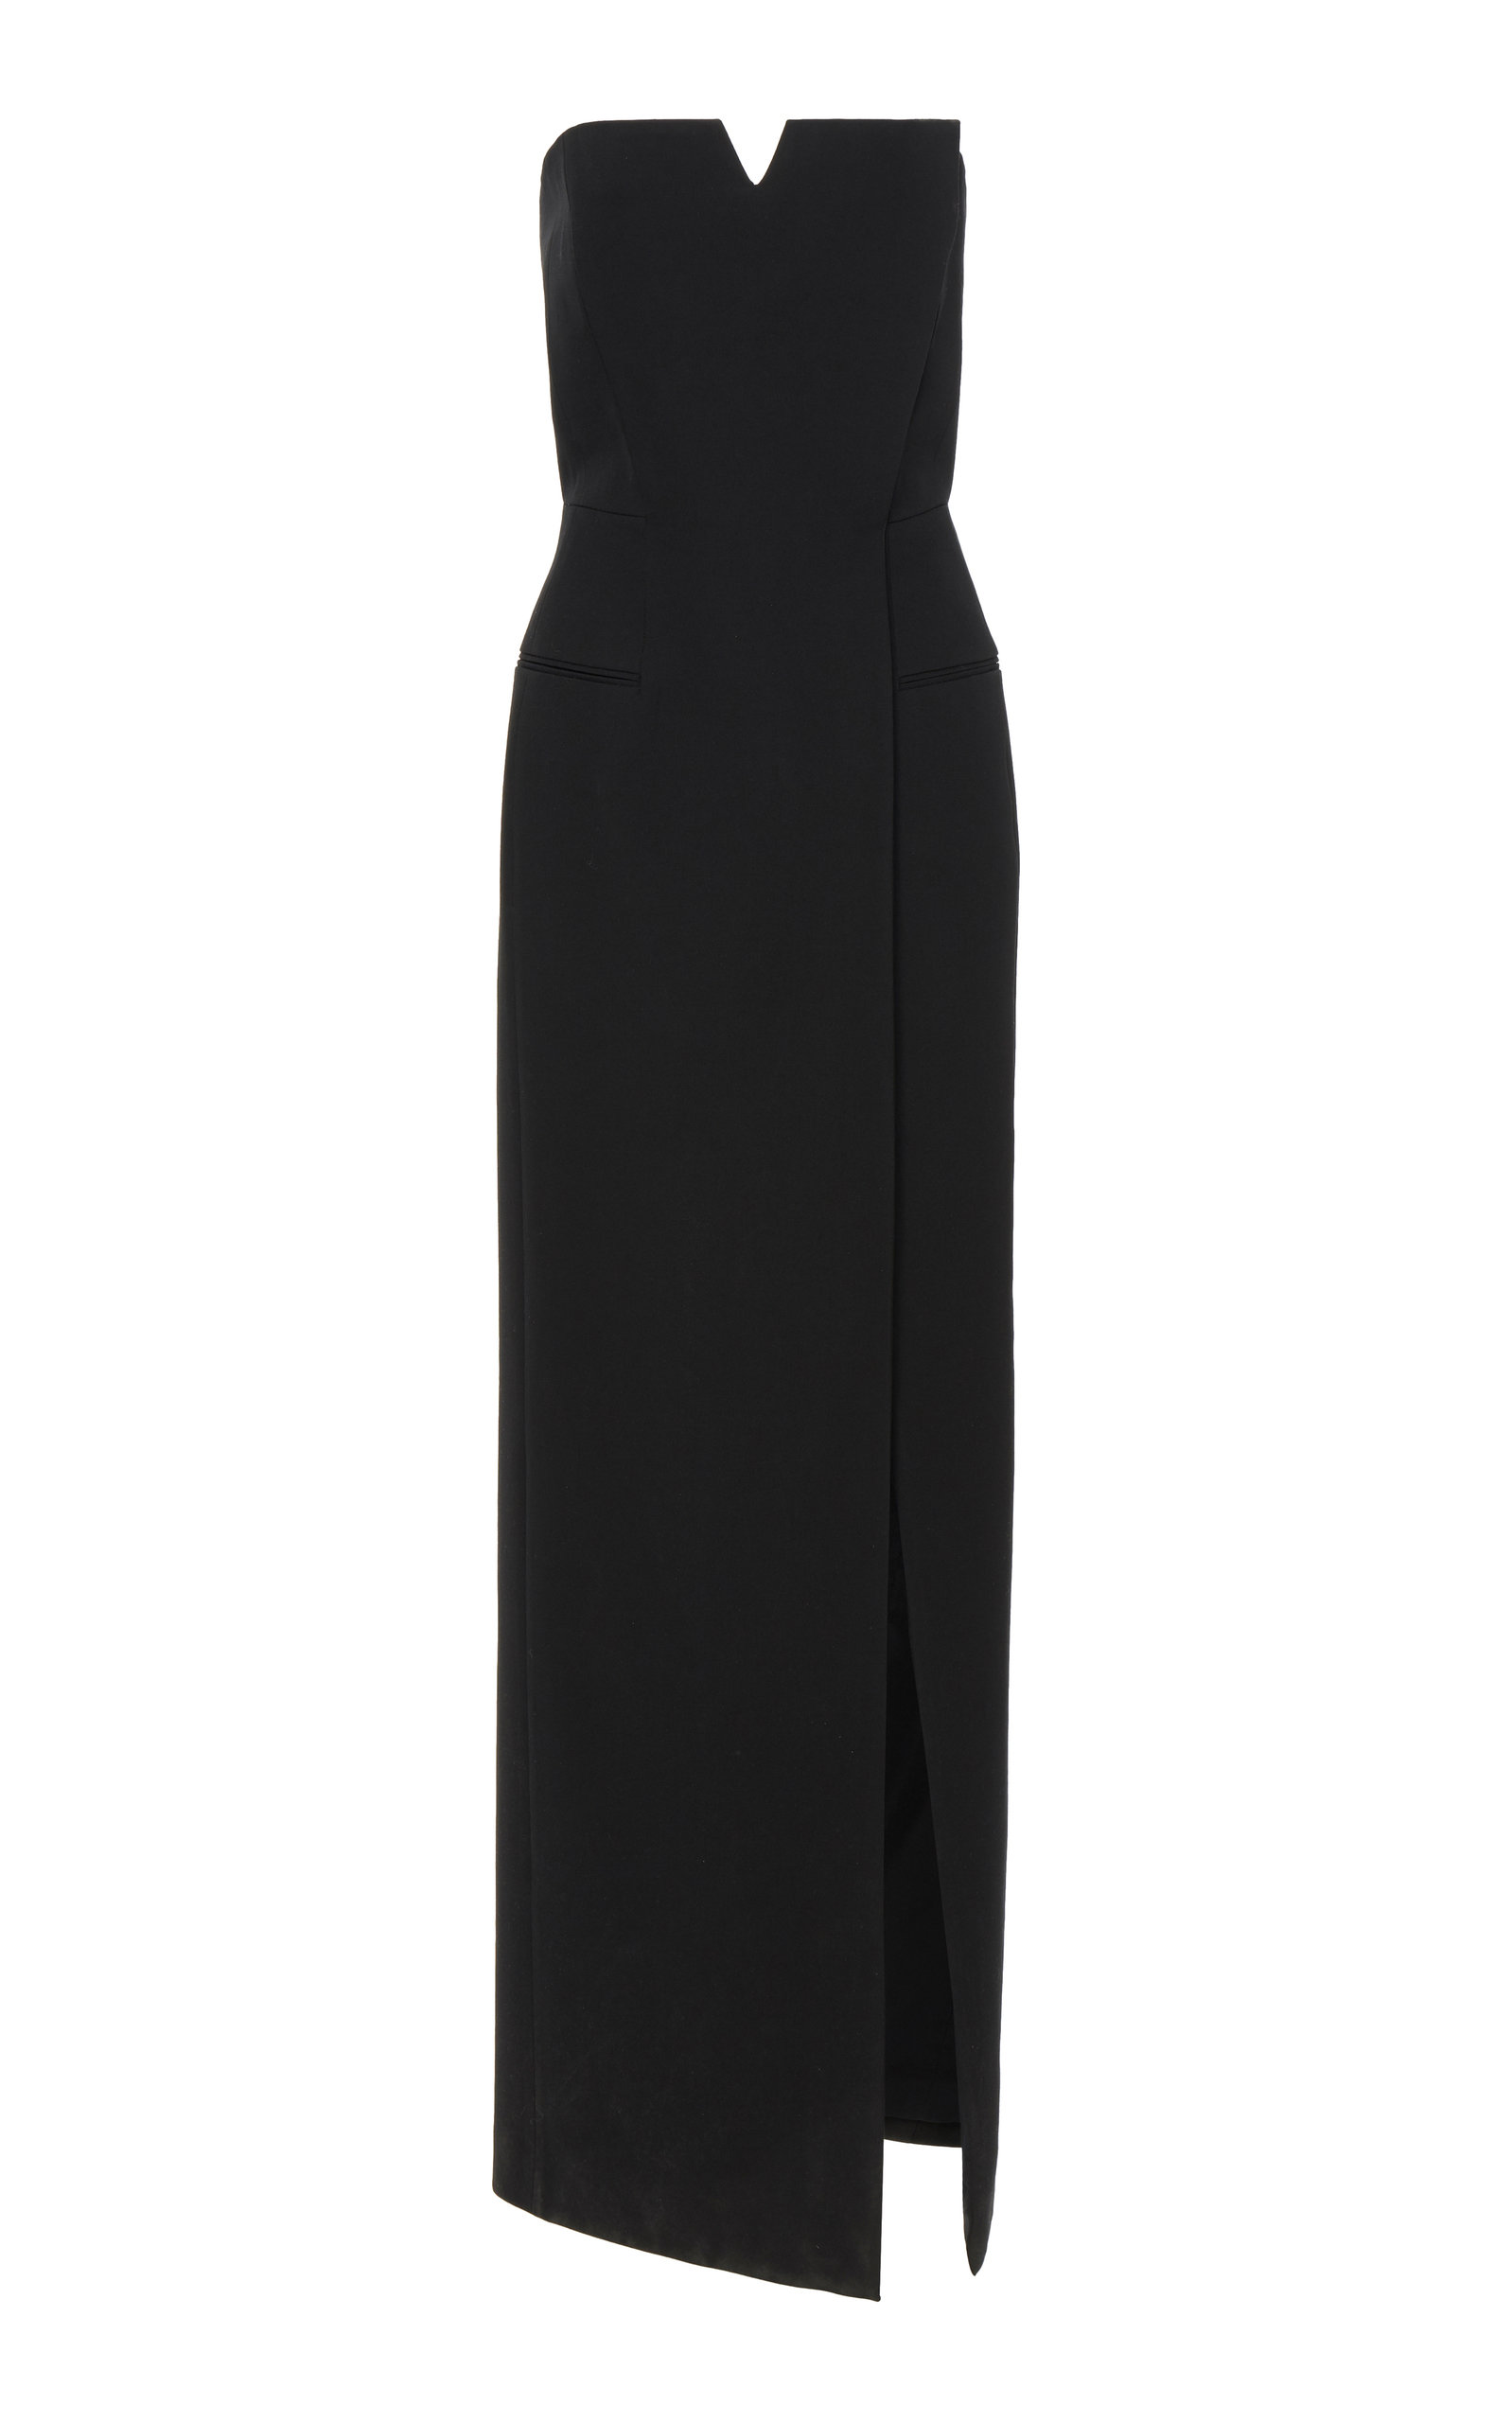 Givenchy Dress Strapless Wrap-Effect Cady Gown